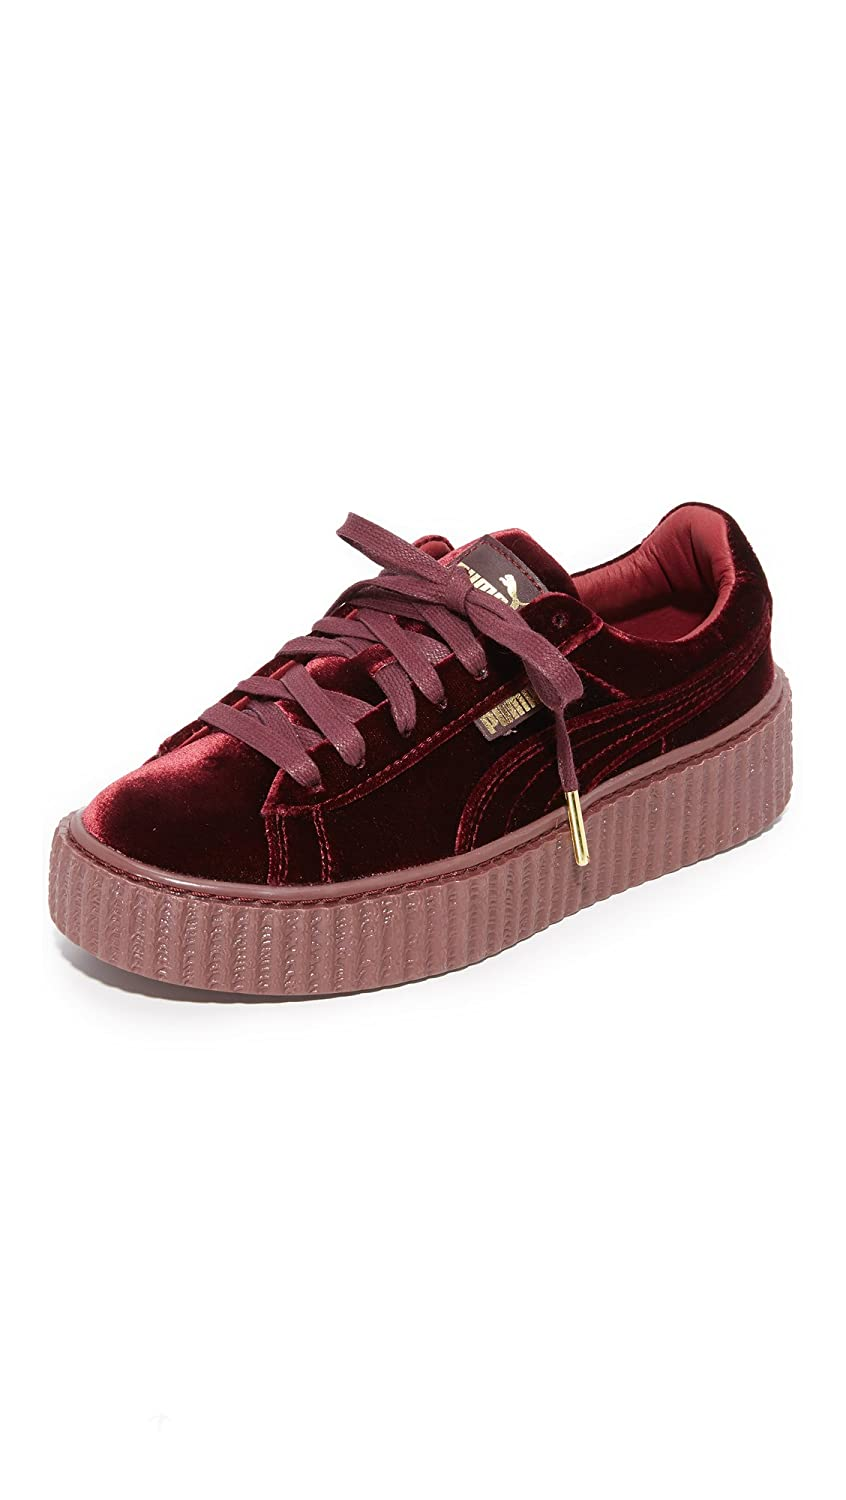 sports shoes 77524 2886d PUMA Women's Creeper Velvet Sneakers